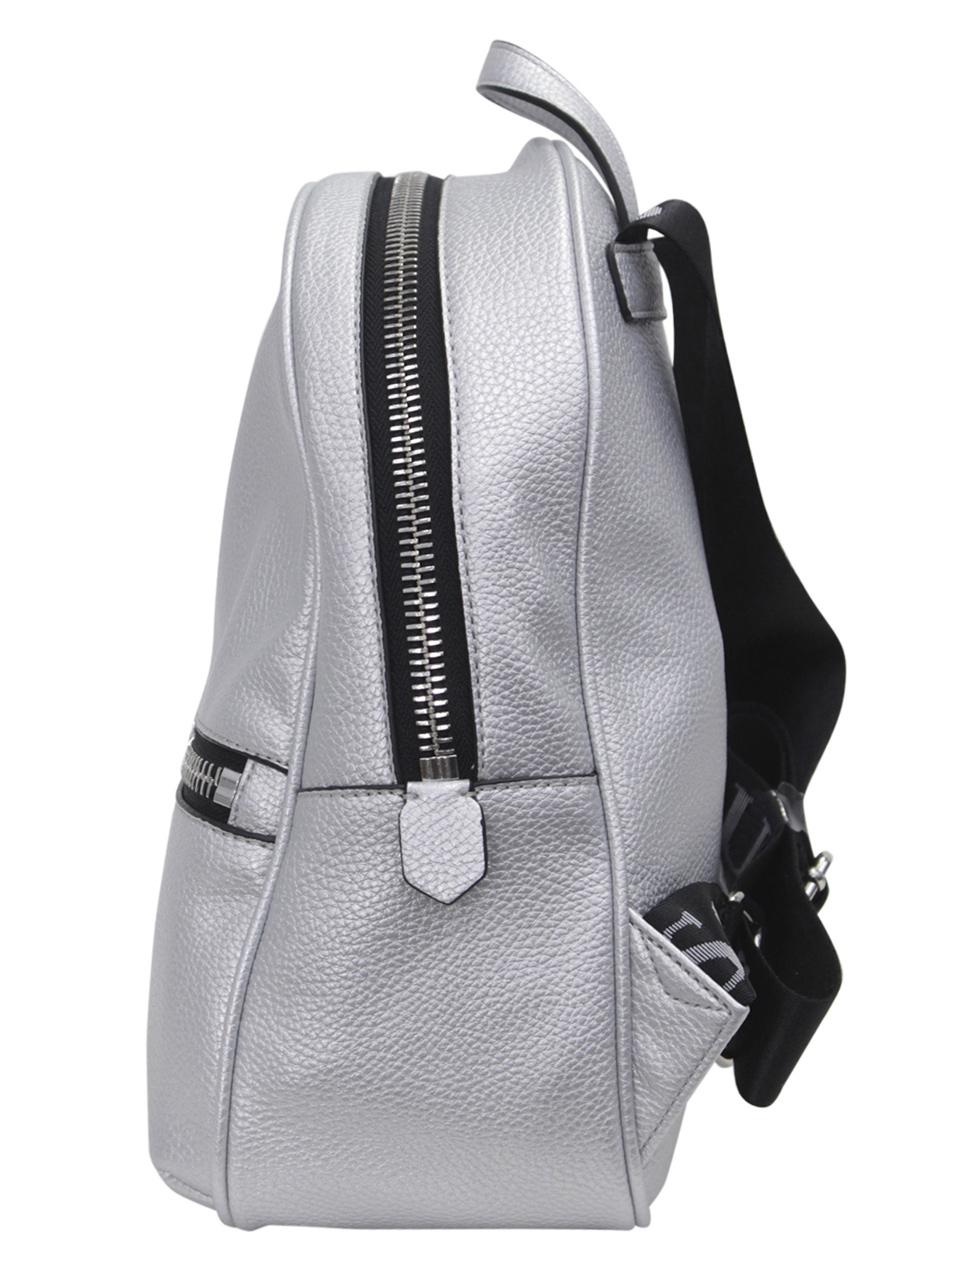 11adfb64de045 Guess-Damen-Urban-Schick-Gross-Rucksack Indexbild 12